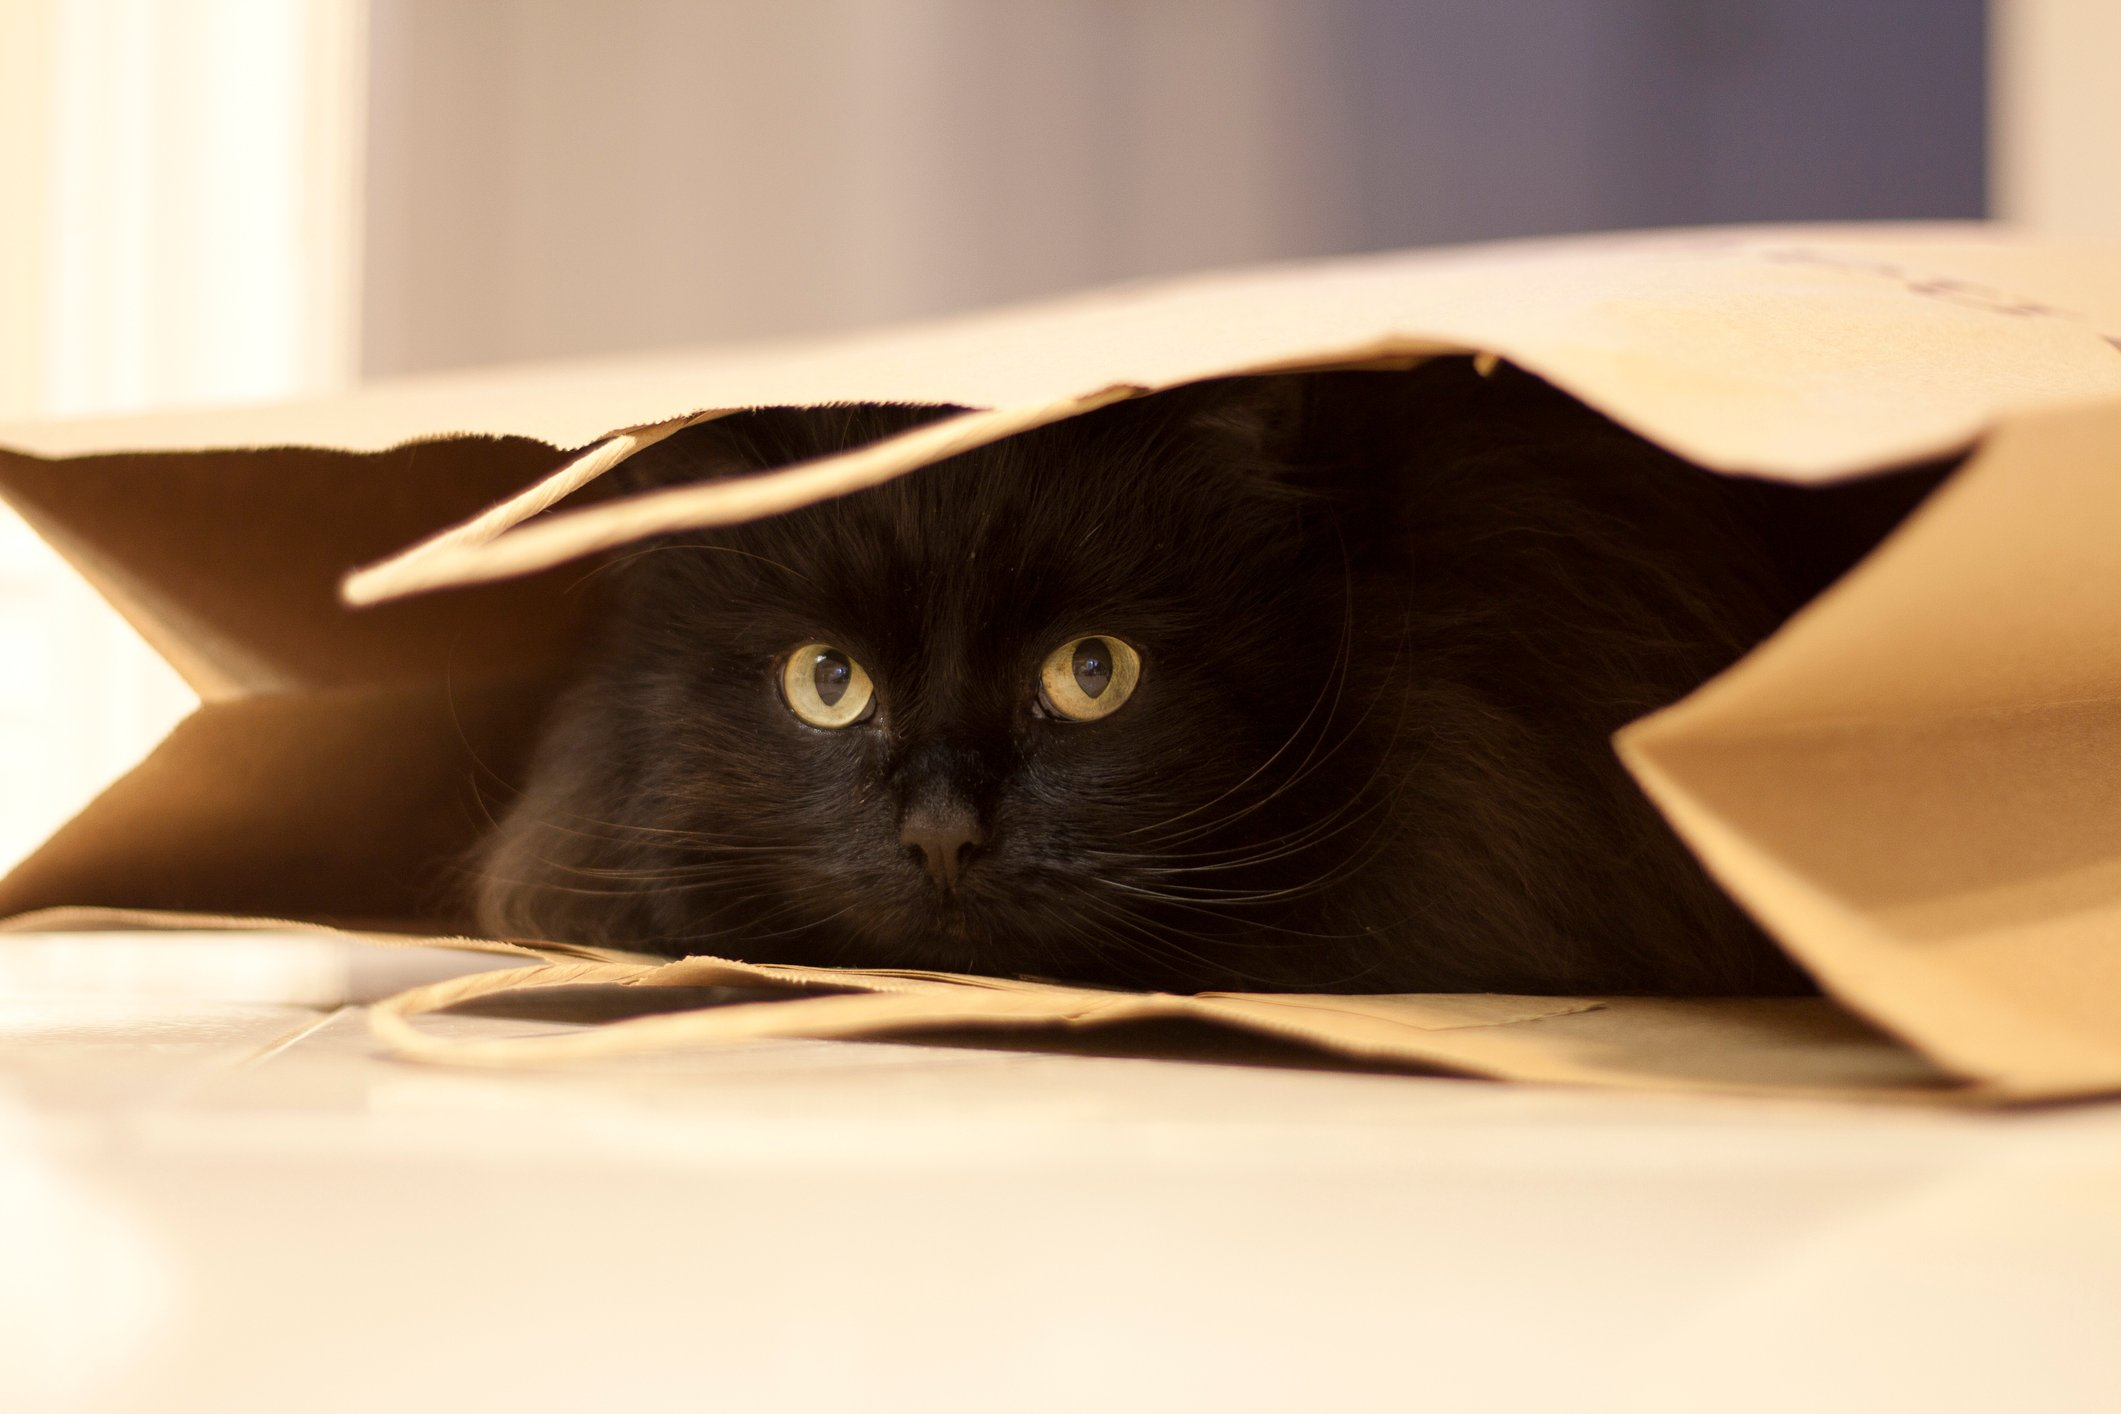 Black cat hiding in paper shopping bag with green eyes and whiskers peeking out.